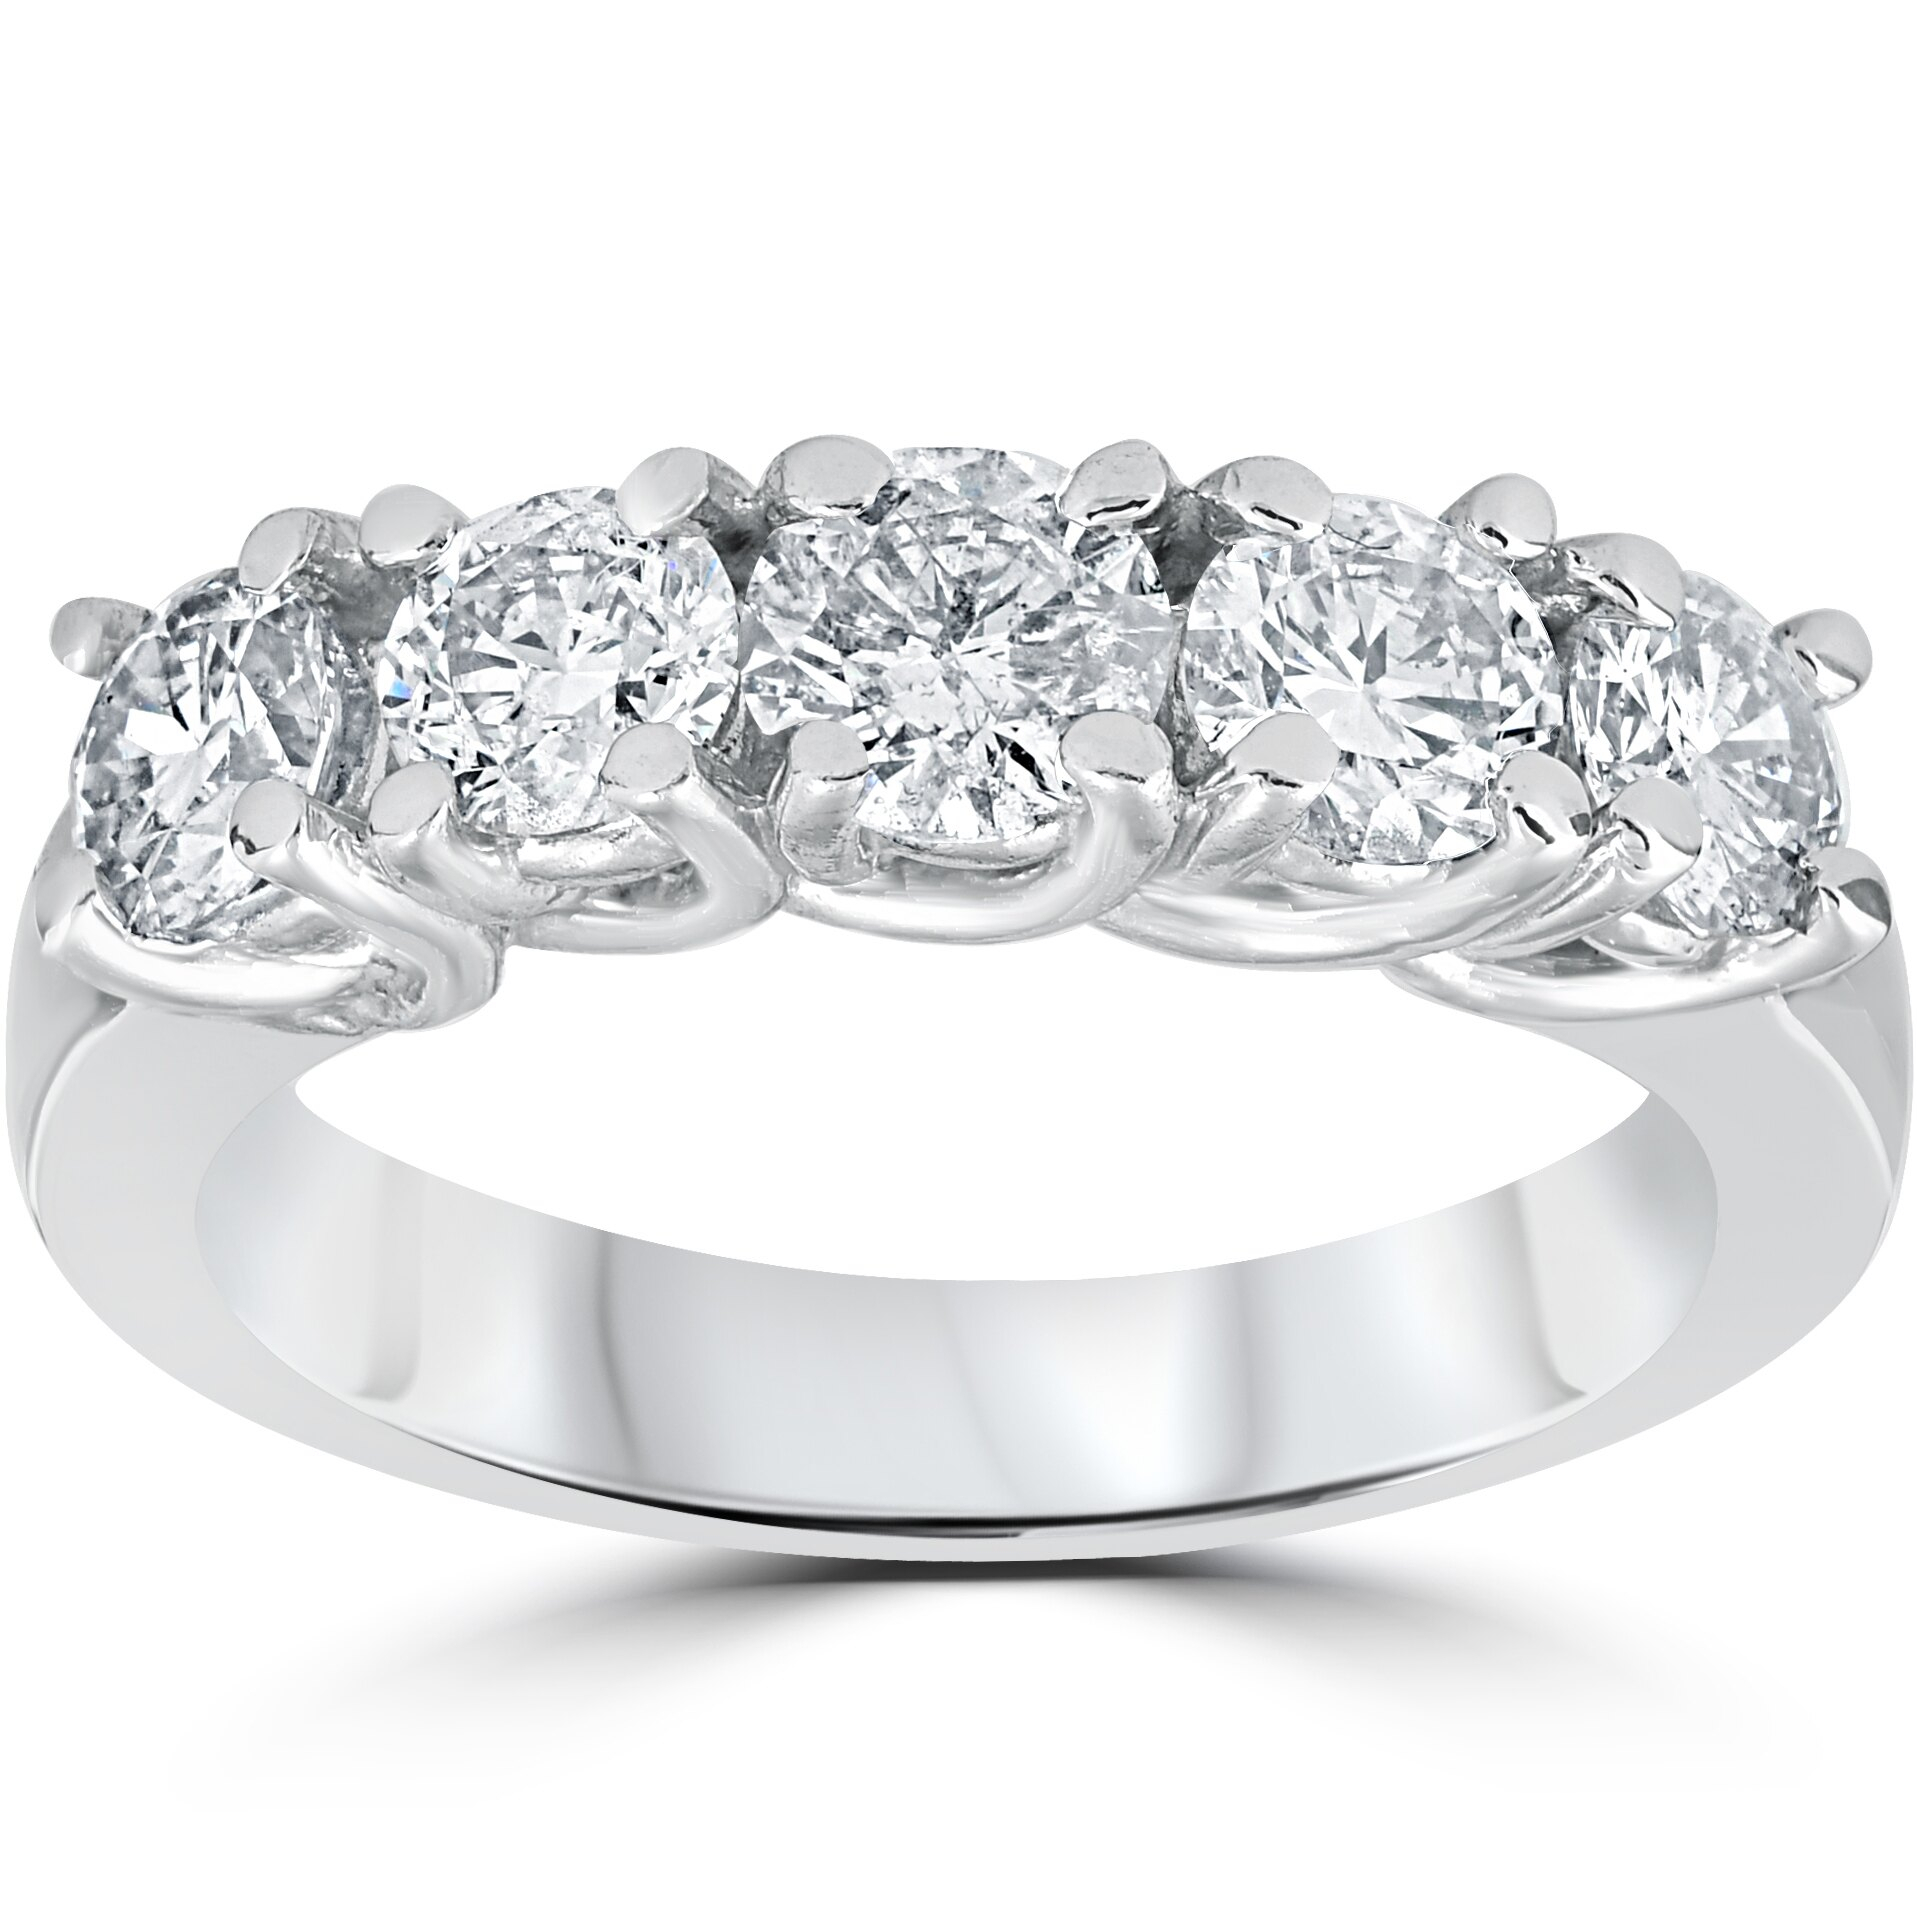 1 1/2Ct Real Diamond Wedding Anniversary Band Womens 14K White Gold Ring In Most Recent Diamond Station Anniversary Bands In Rose Gold (View 3 of 25)